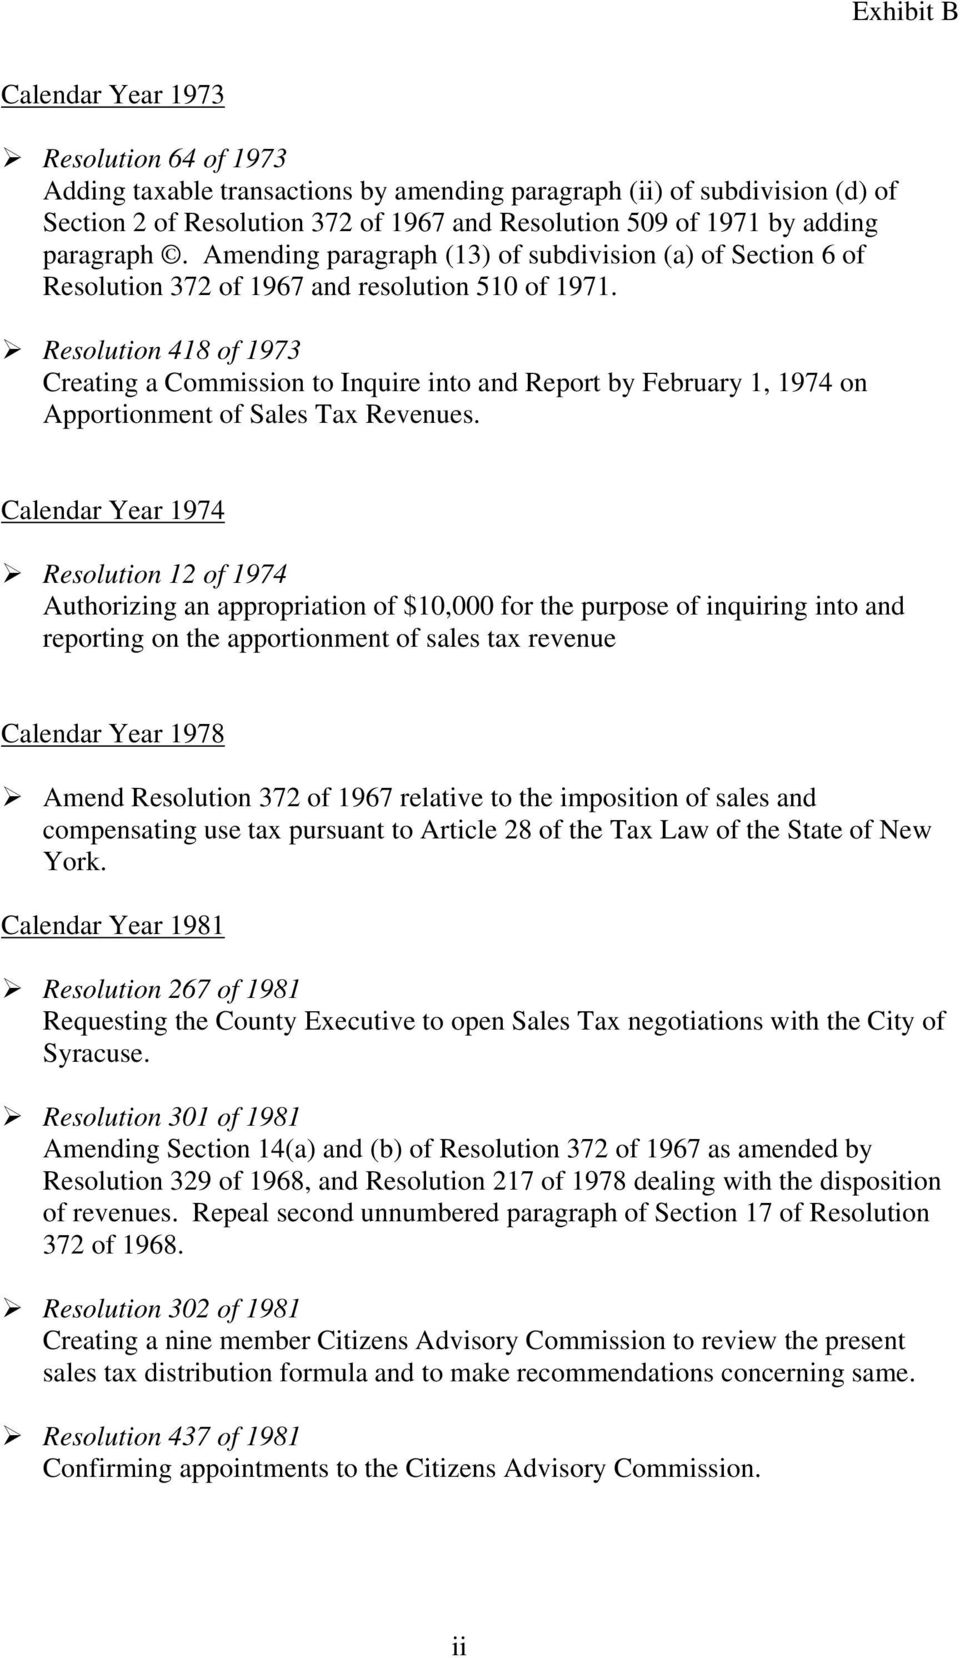 Resolution 418 of 1973 Creating a Commission to Inquire into and Report by February 1, 1974 on Apportionment of Sales Tax Revenues.